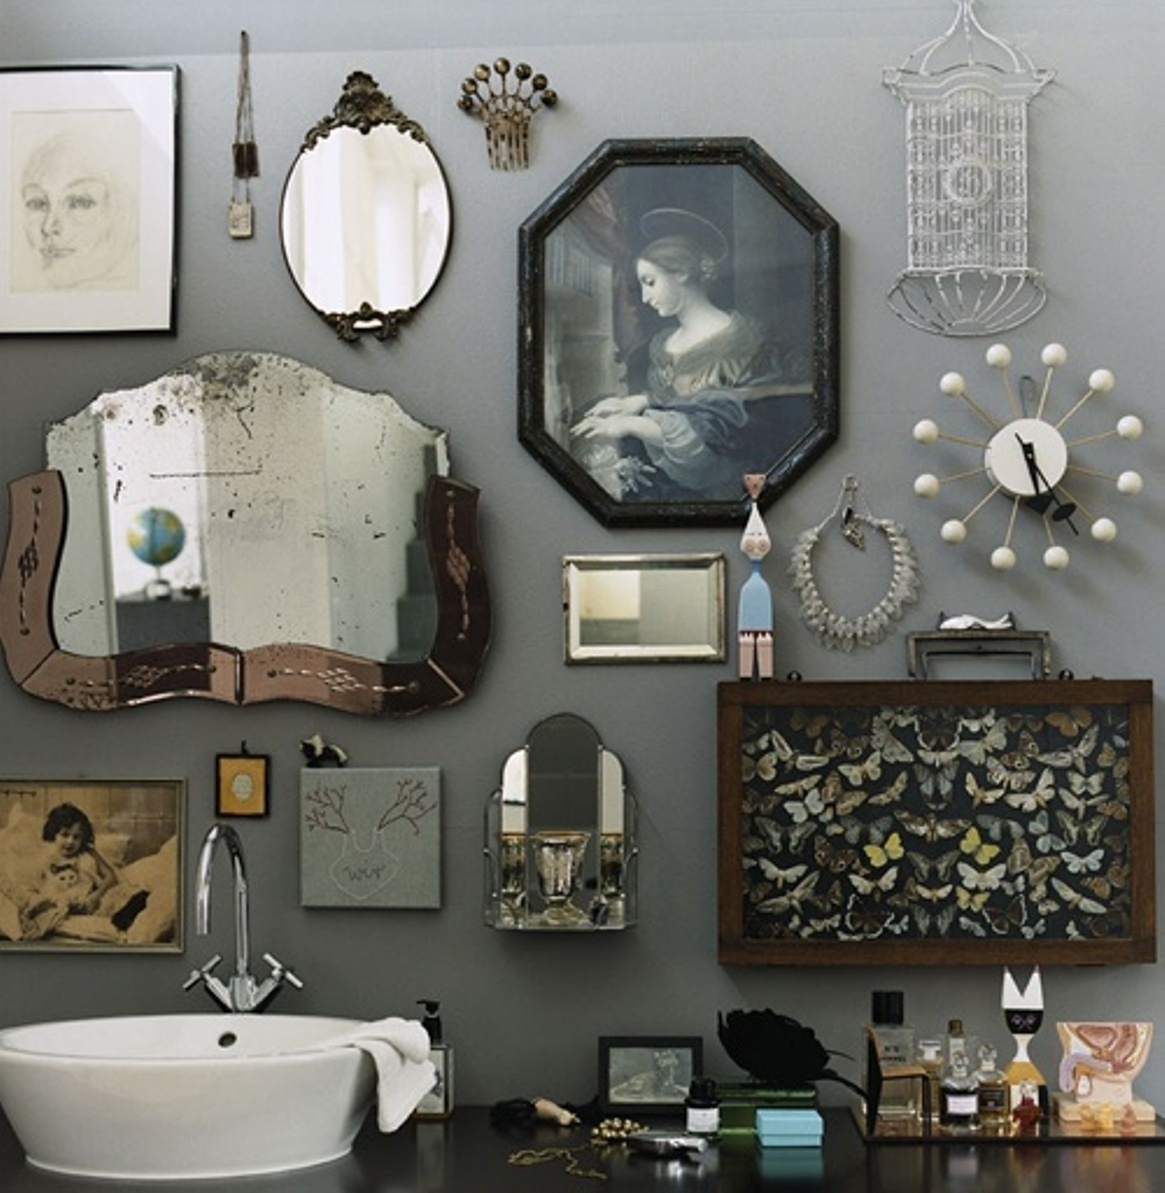 Charming Bathroom Wall Decor Inspirations — The Home Redesign Within Most Up To Date Wall Accents For Bathrooms (View 6 of 15)